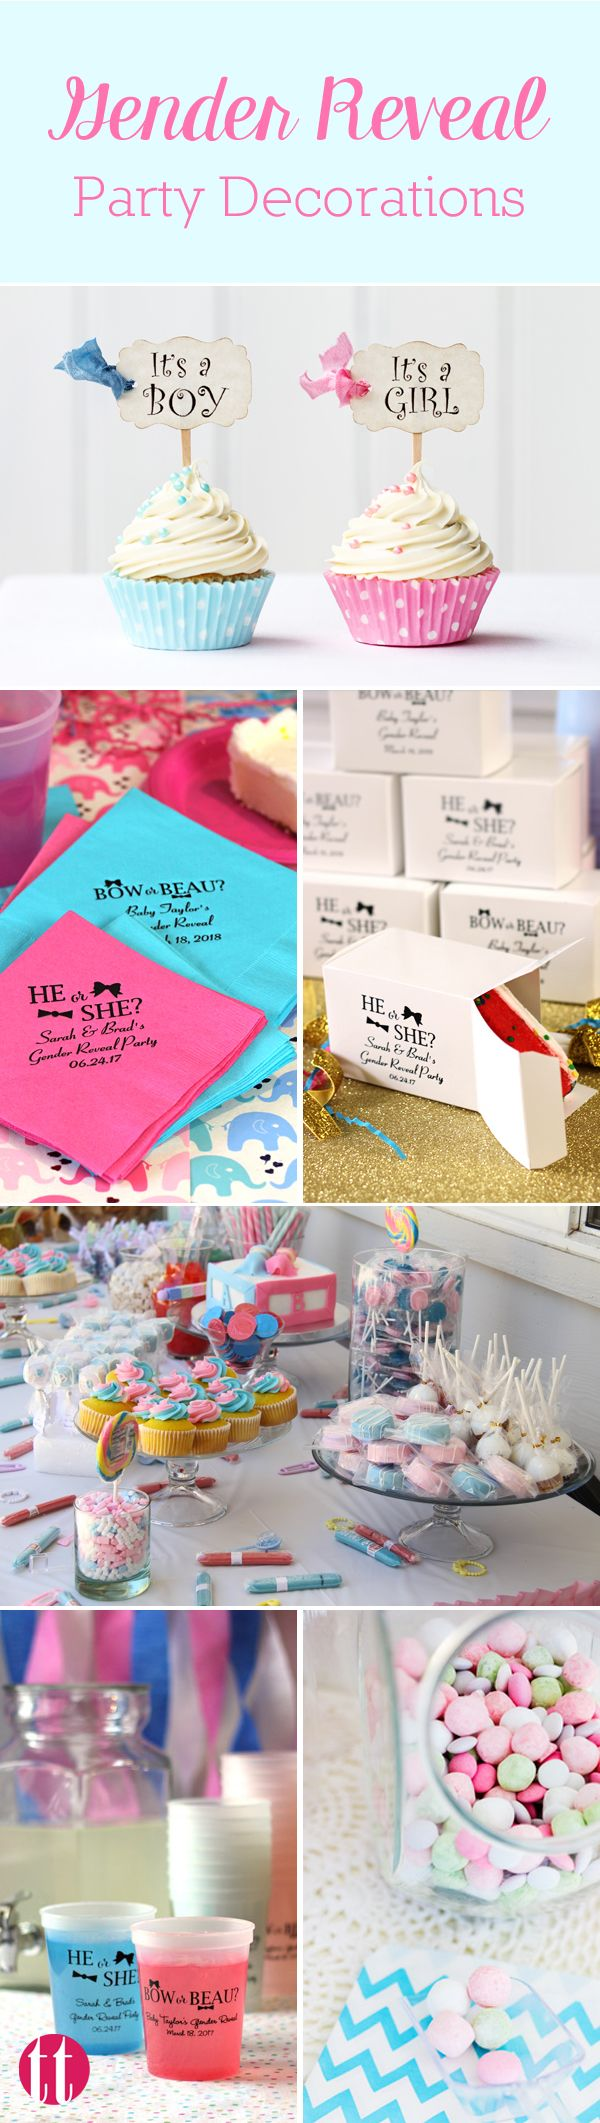 Make sure your gender reveal party is on point with decorations that are as creative as the reveal itself. See more party ideas at https://www.tippytoad.com/baby-shower.asp. Cups that change color when they get cold, personalized boxes for packaging the reveal cake, napkins, baby shower favors, souvenirs and much more.